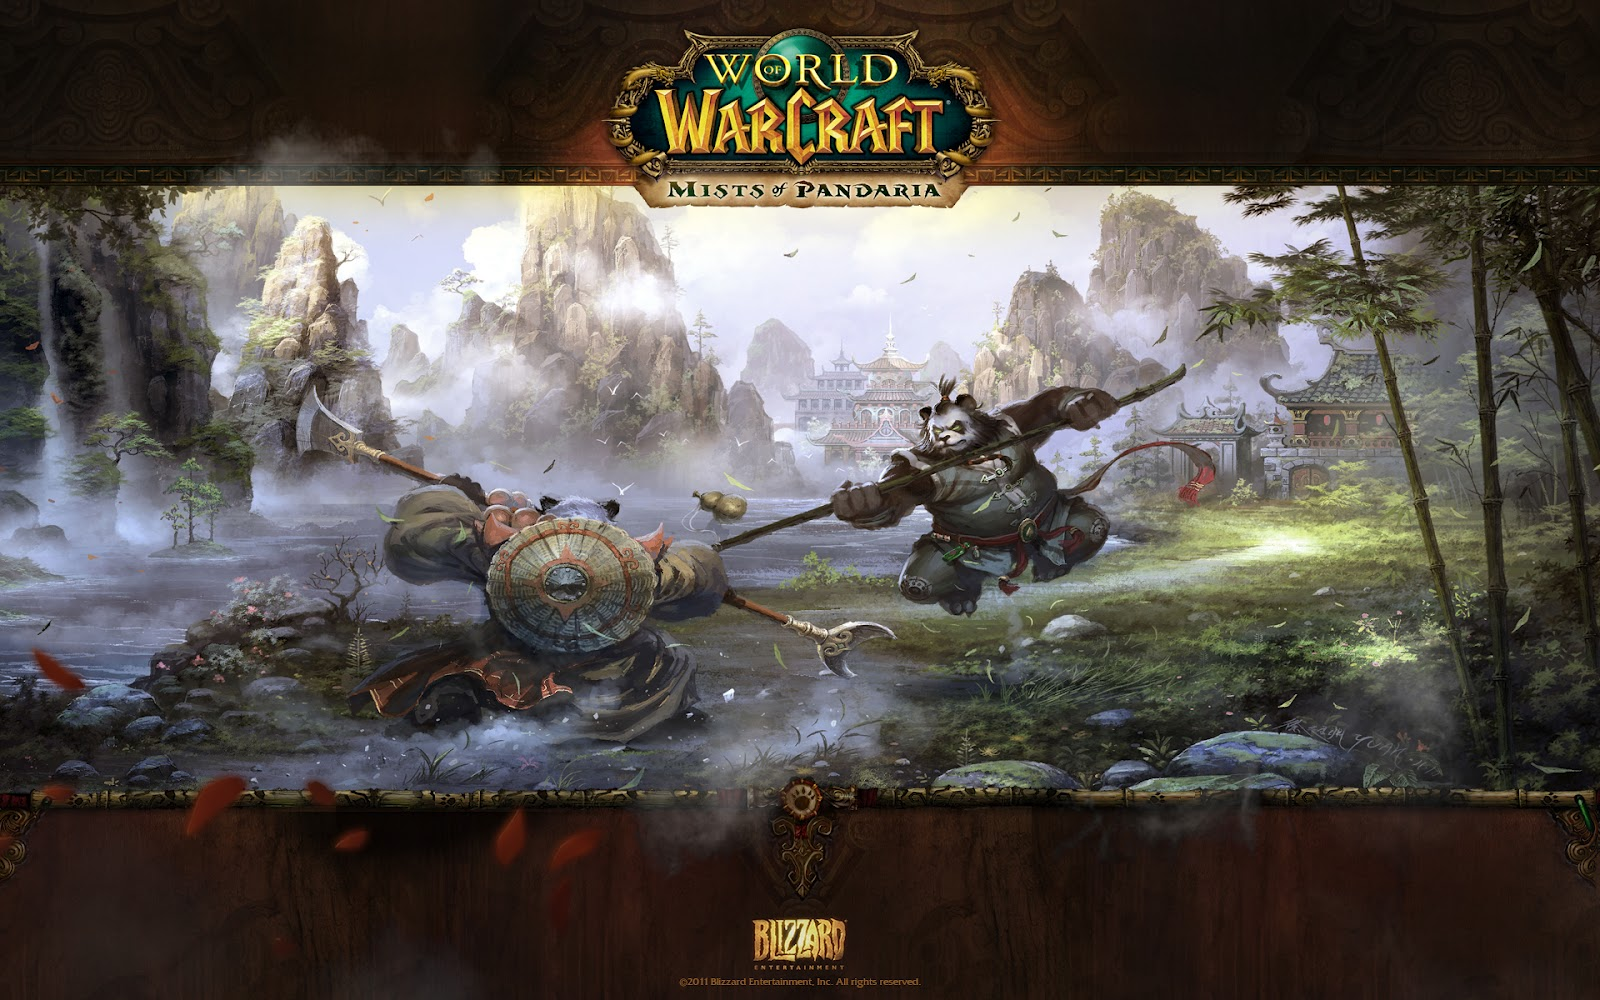 Wow mestre world of warcraft para todos requisitos minimos para requisitos minimos para jogar mop fandeluxe Images